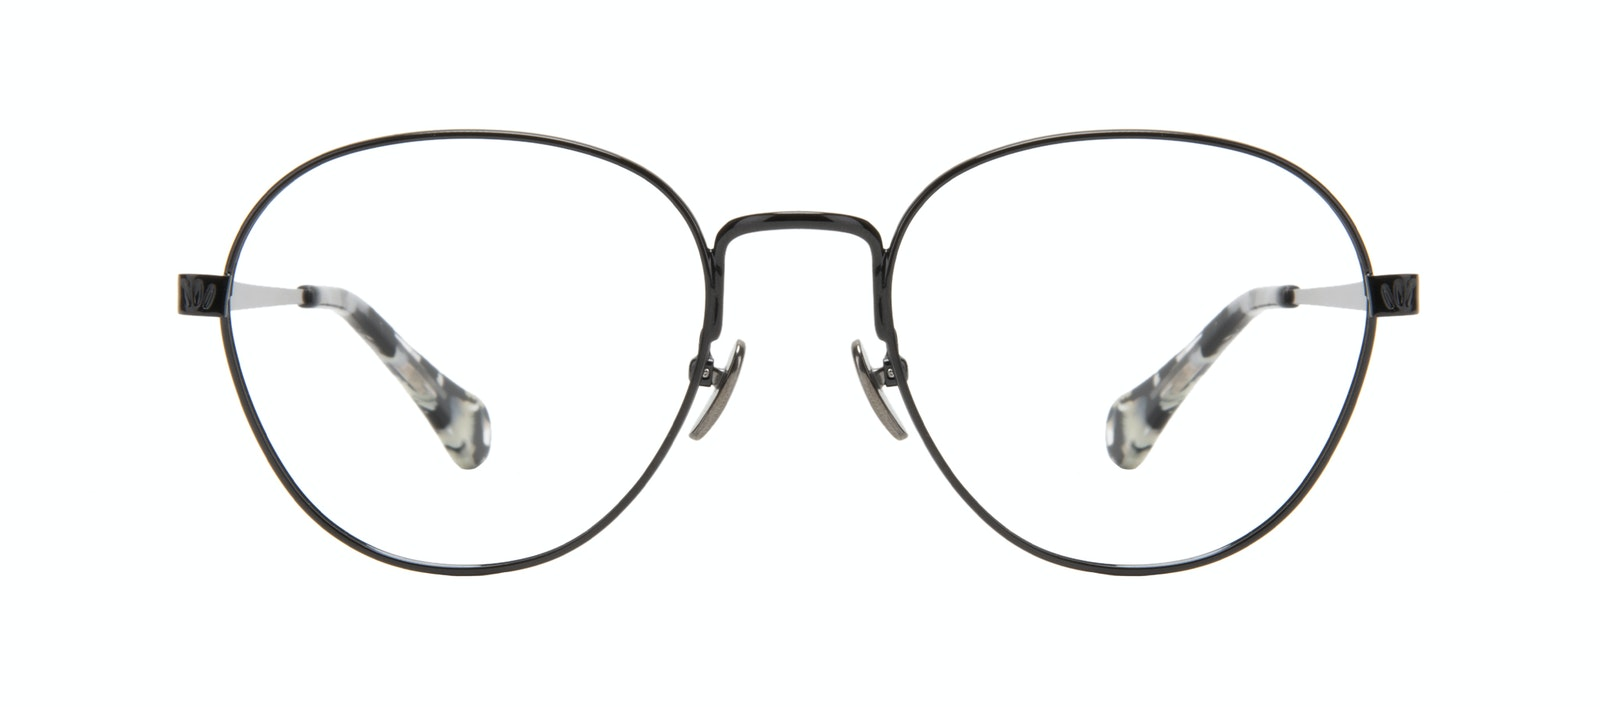 4f455fa7d8d Affordable Fashion Glasses Round Eyeglasses Women Brace Onyx Marble Front